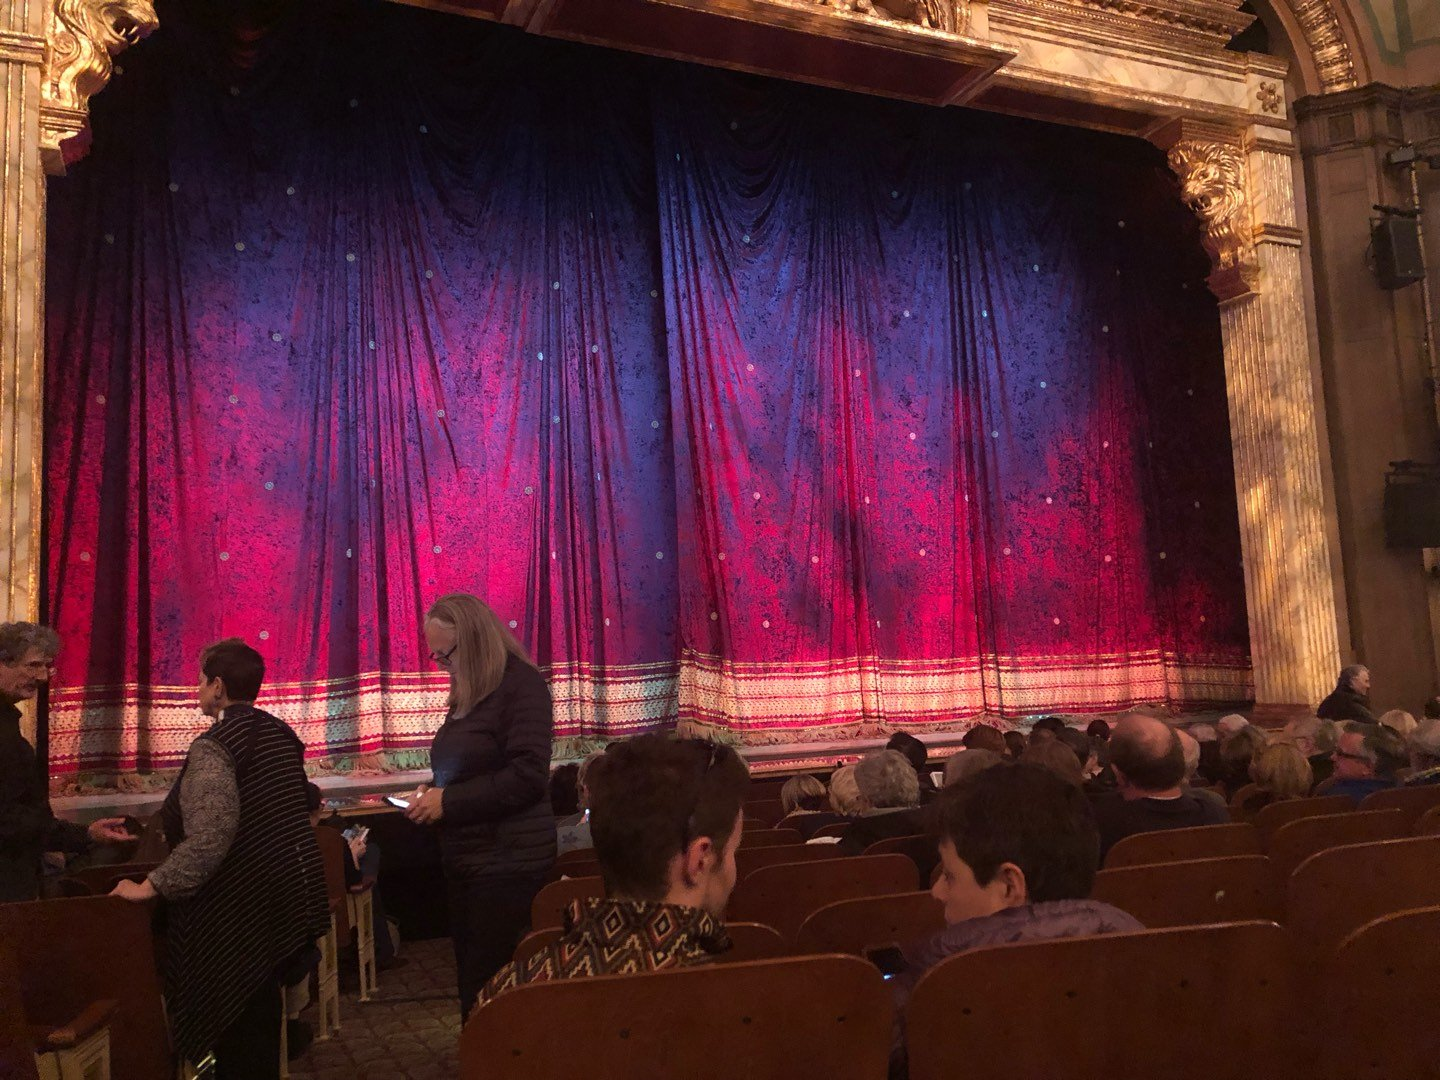 Booth Theatre Section Orchestra C Row H Seat 101